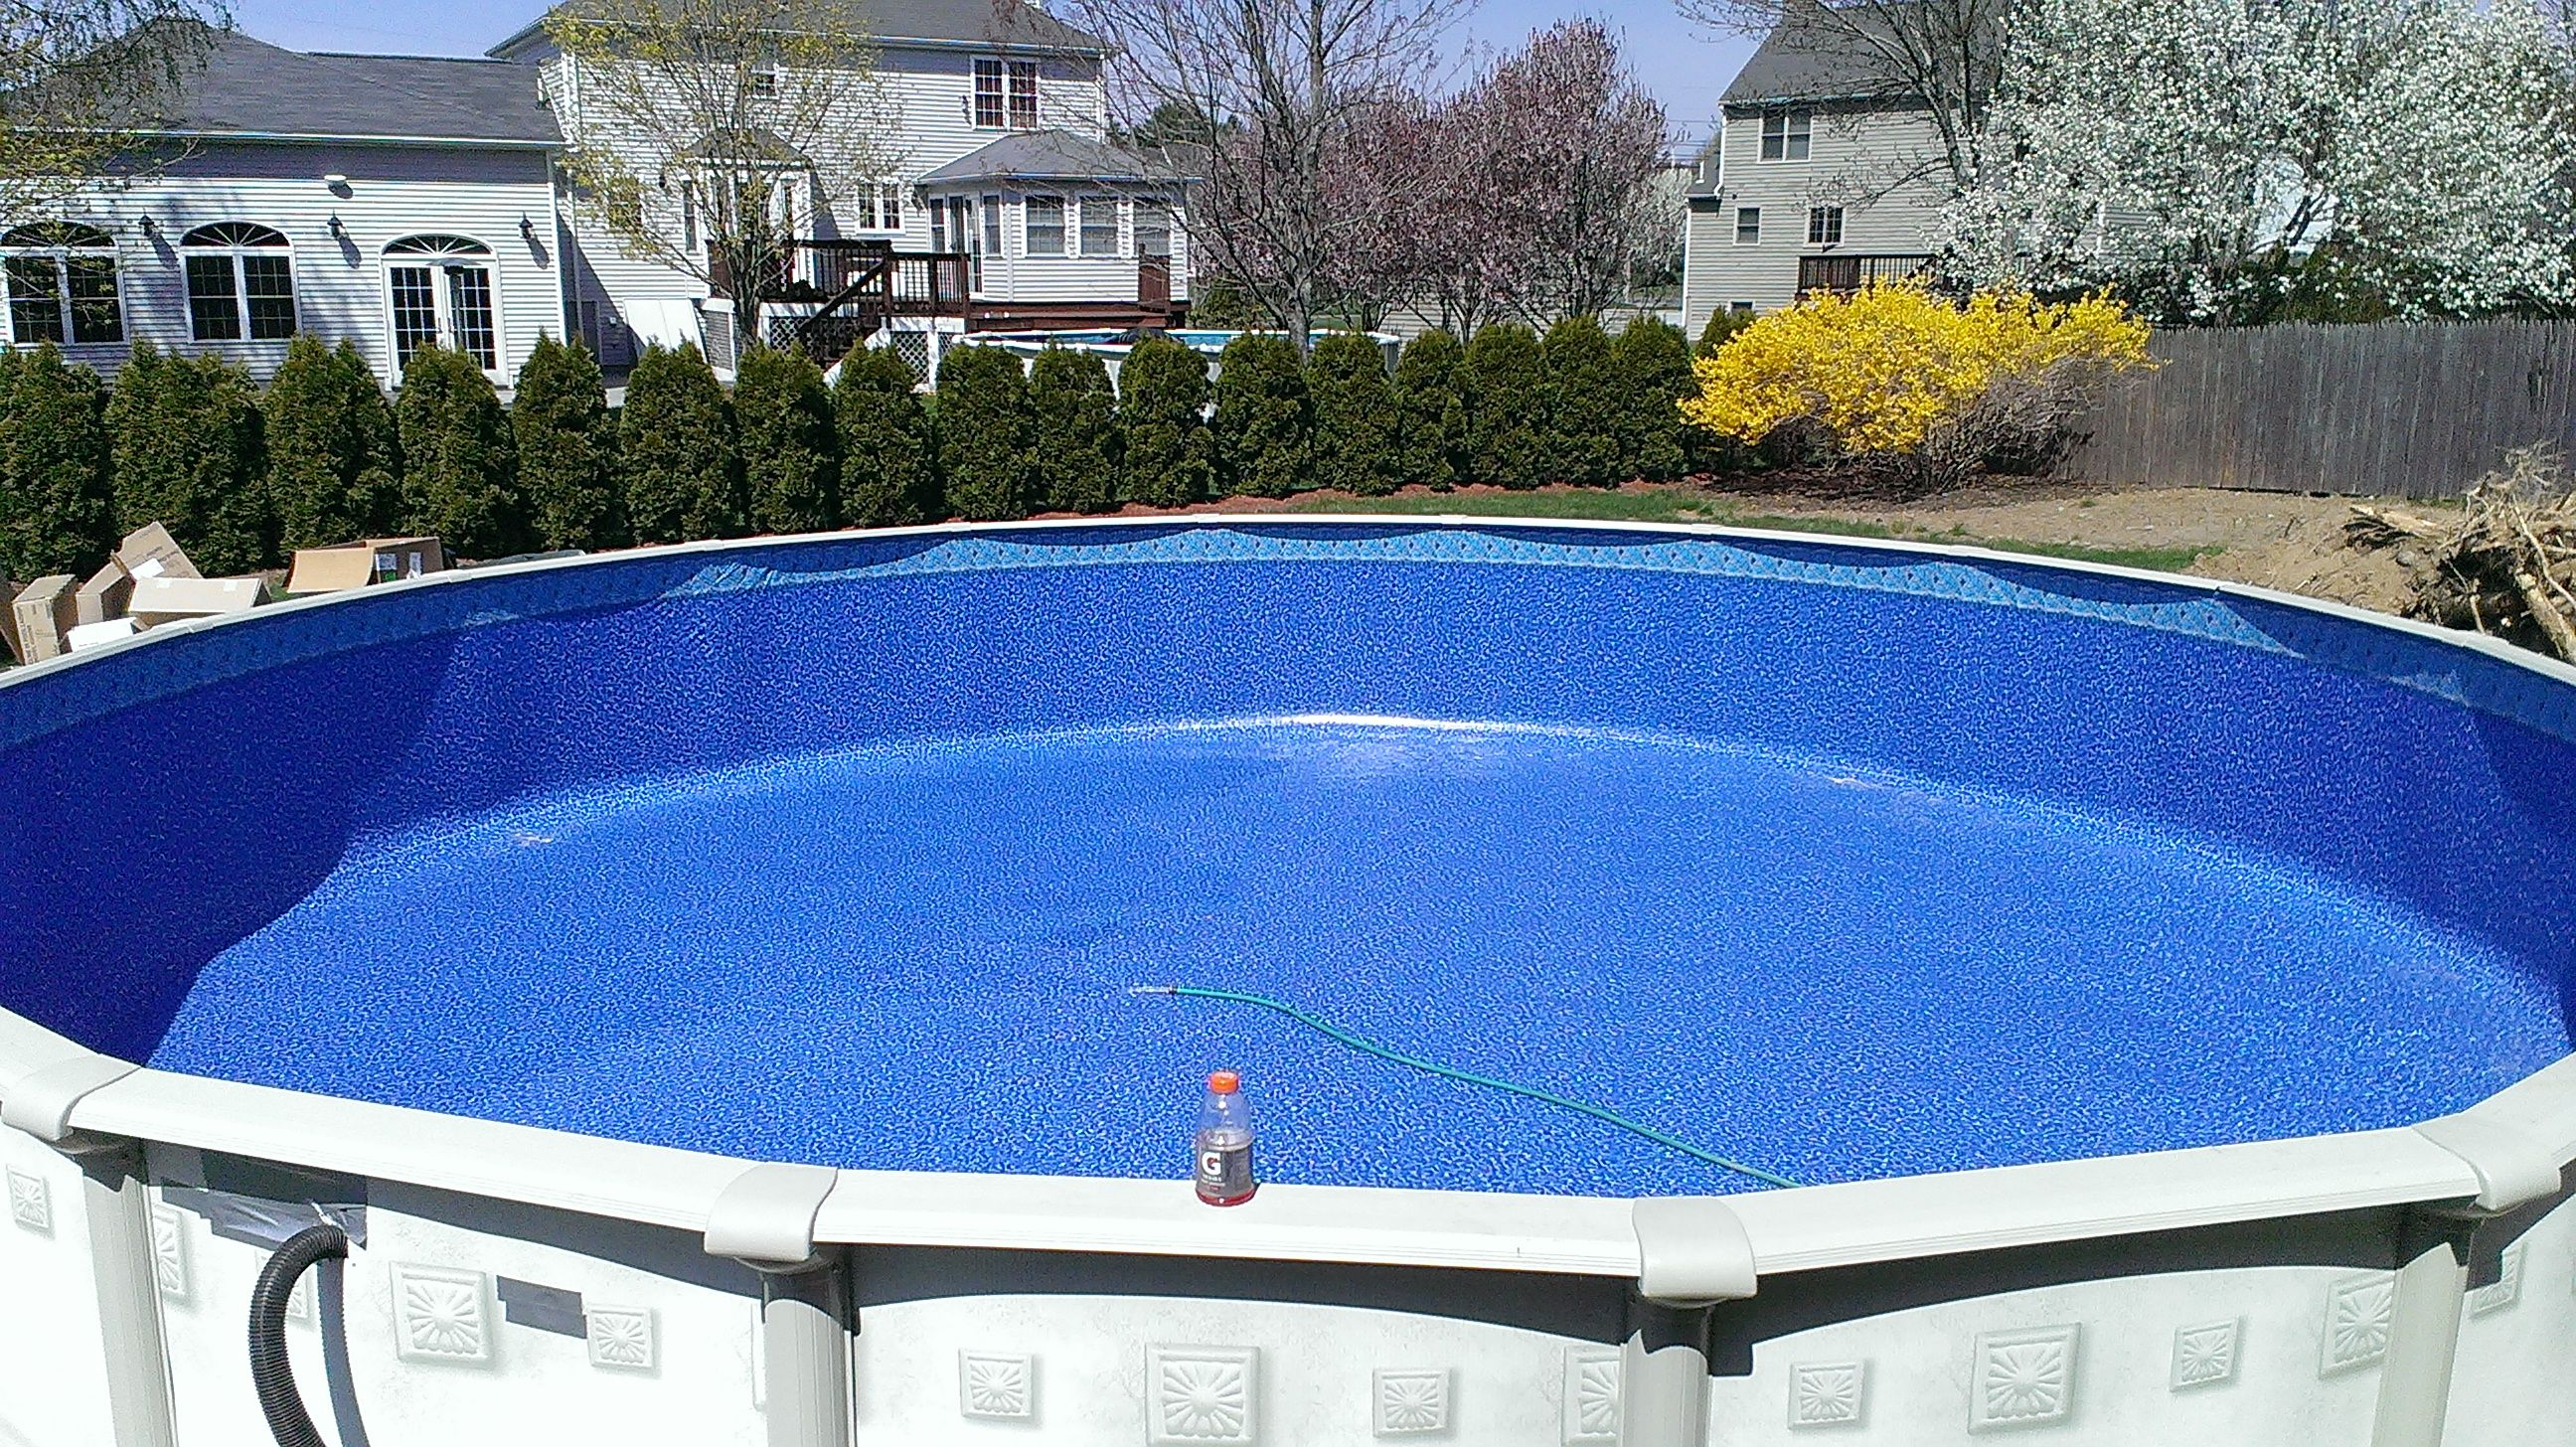 The Step Above Ground Drop In Two Rails Pool Supplies Canada Above Ground Pool Decks Above Ground Pool Ladders